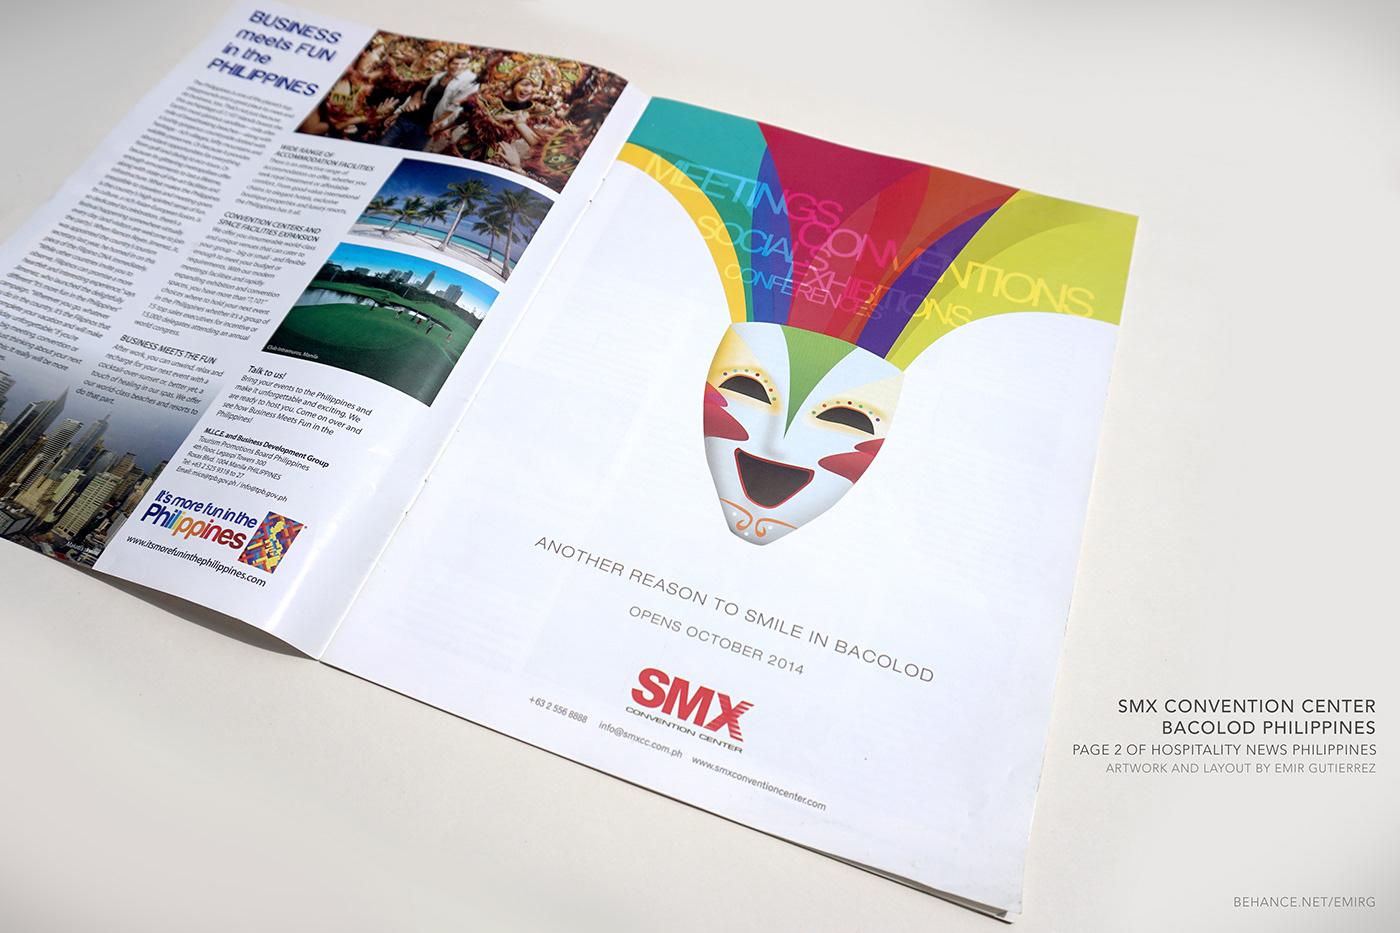 Opening Teaser Ad for SMX Convention Center Bacolod on Behance